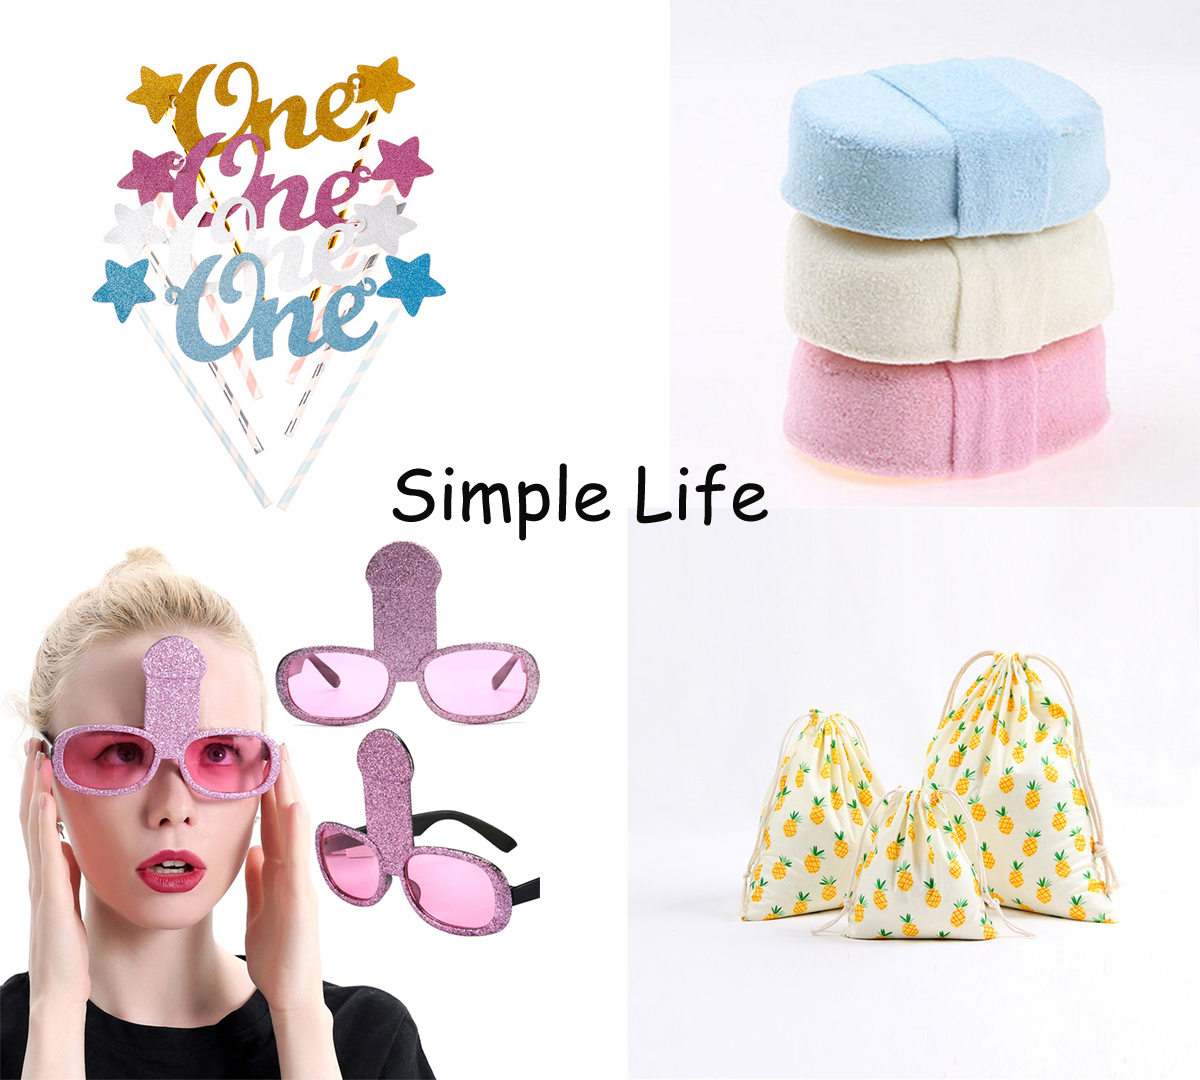 5a1c0e73780c6 Event & Party Goods Store - Small Orders Online Store, Hot Selling ...